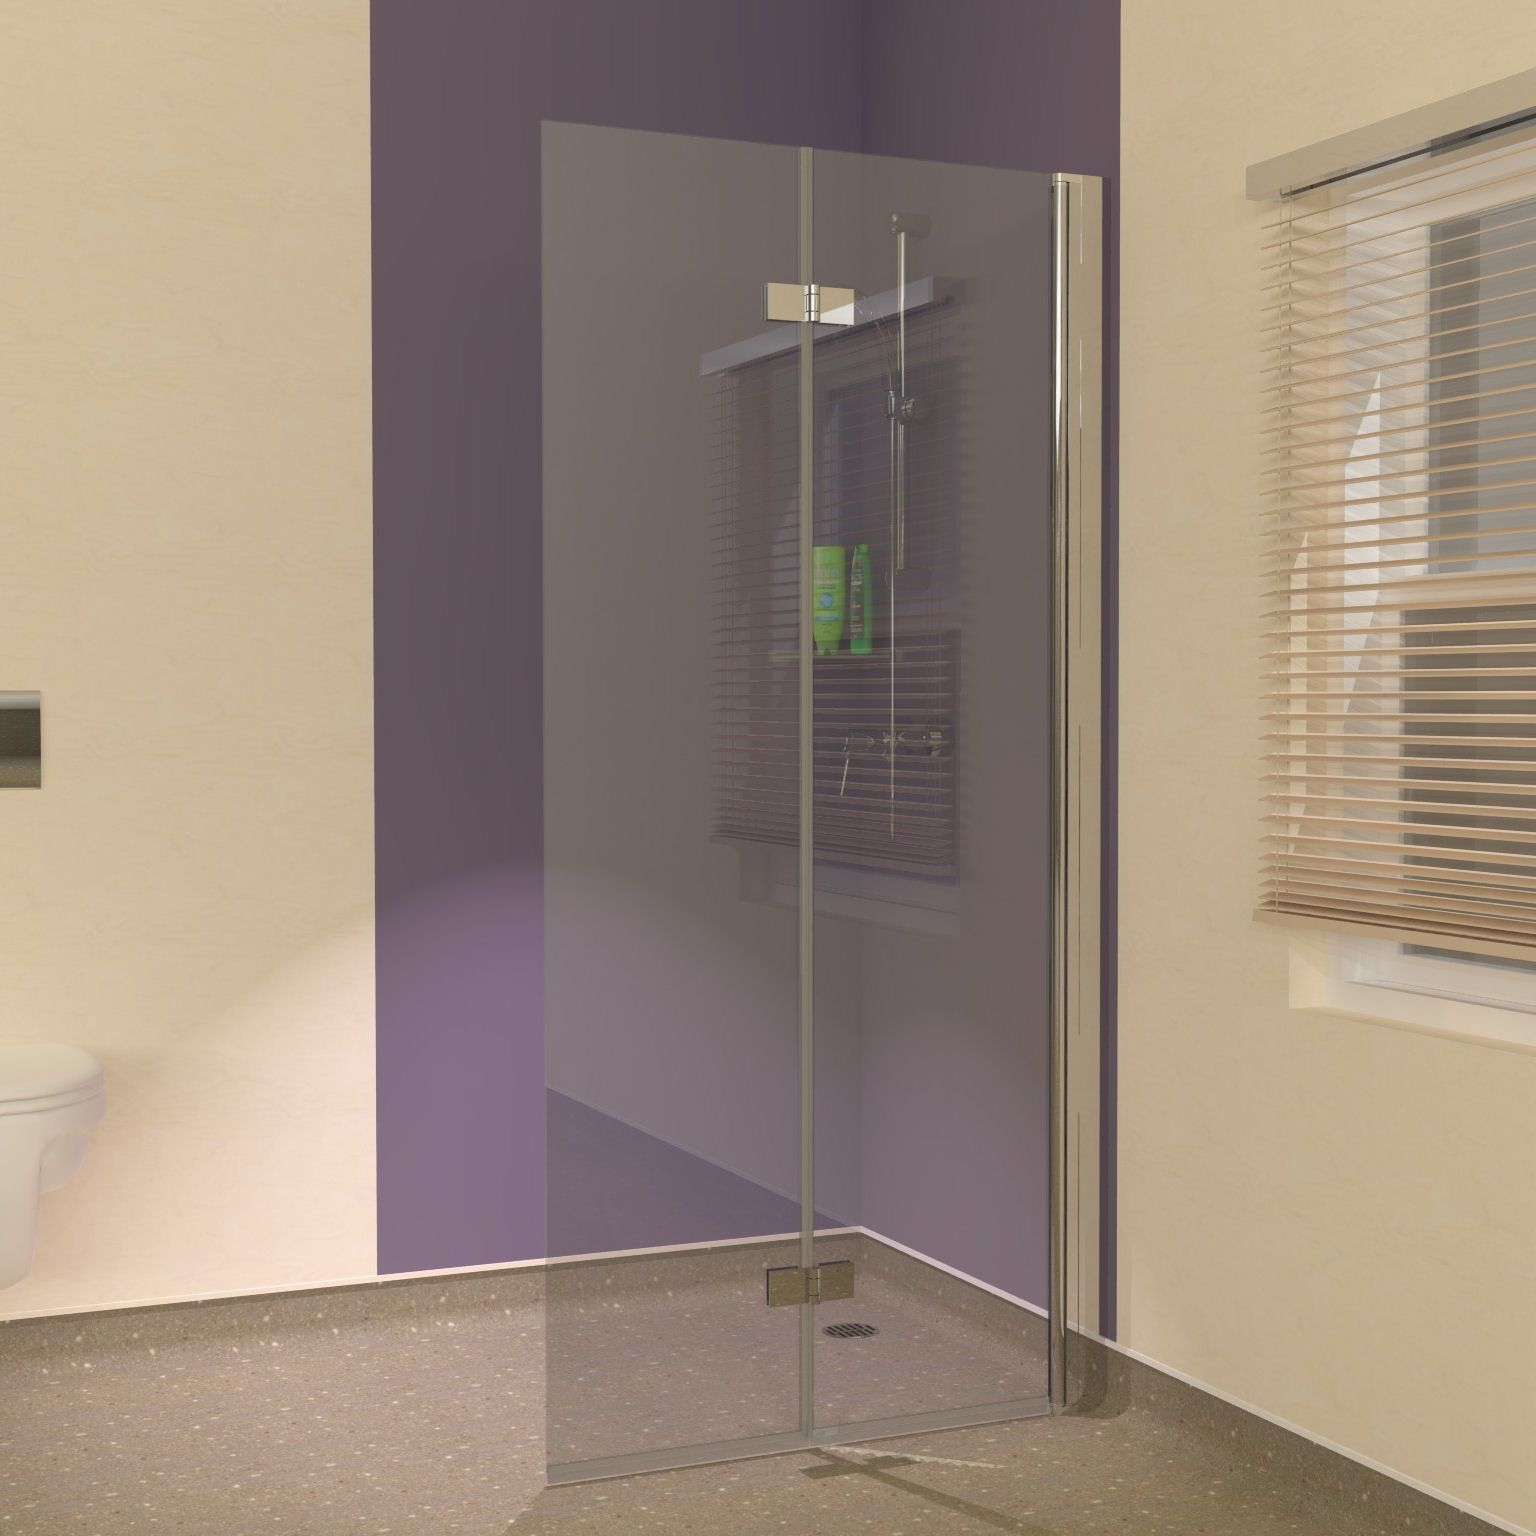 Wet room vinyl flooring hinged glass shower screens mum wet room vinyl flooring hinged glass shower screens planetlyrics